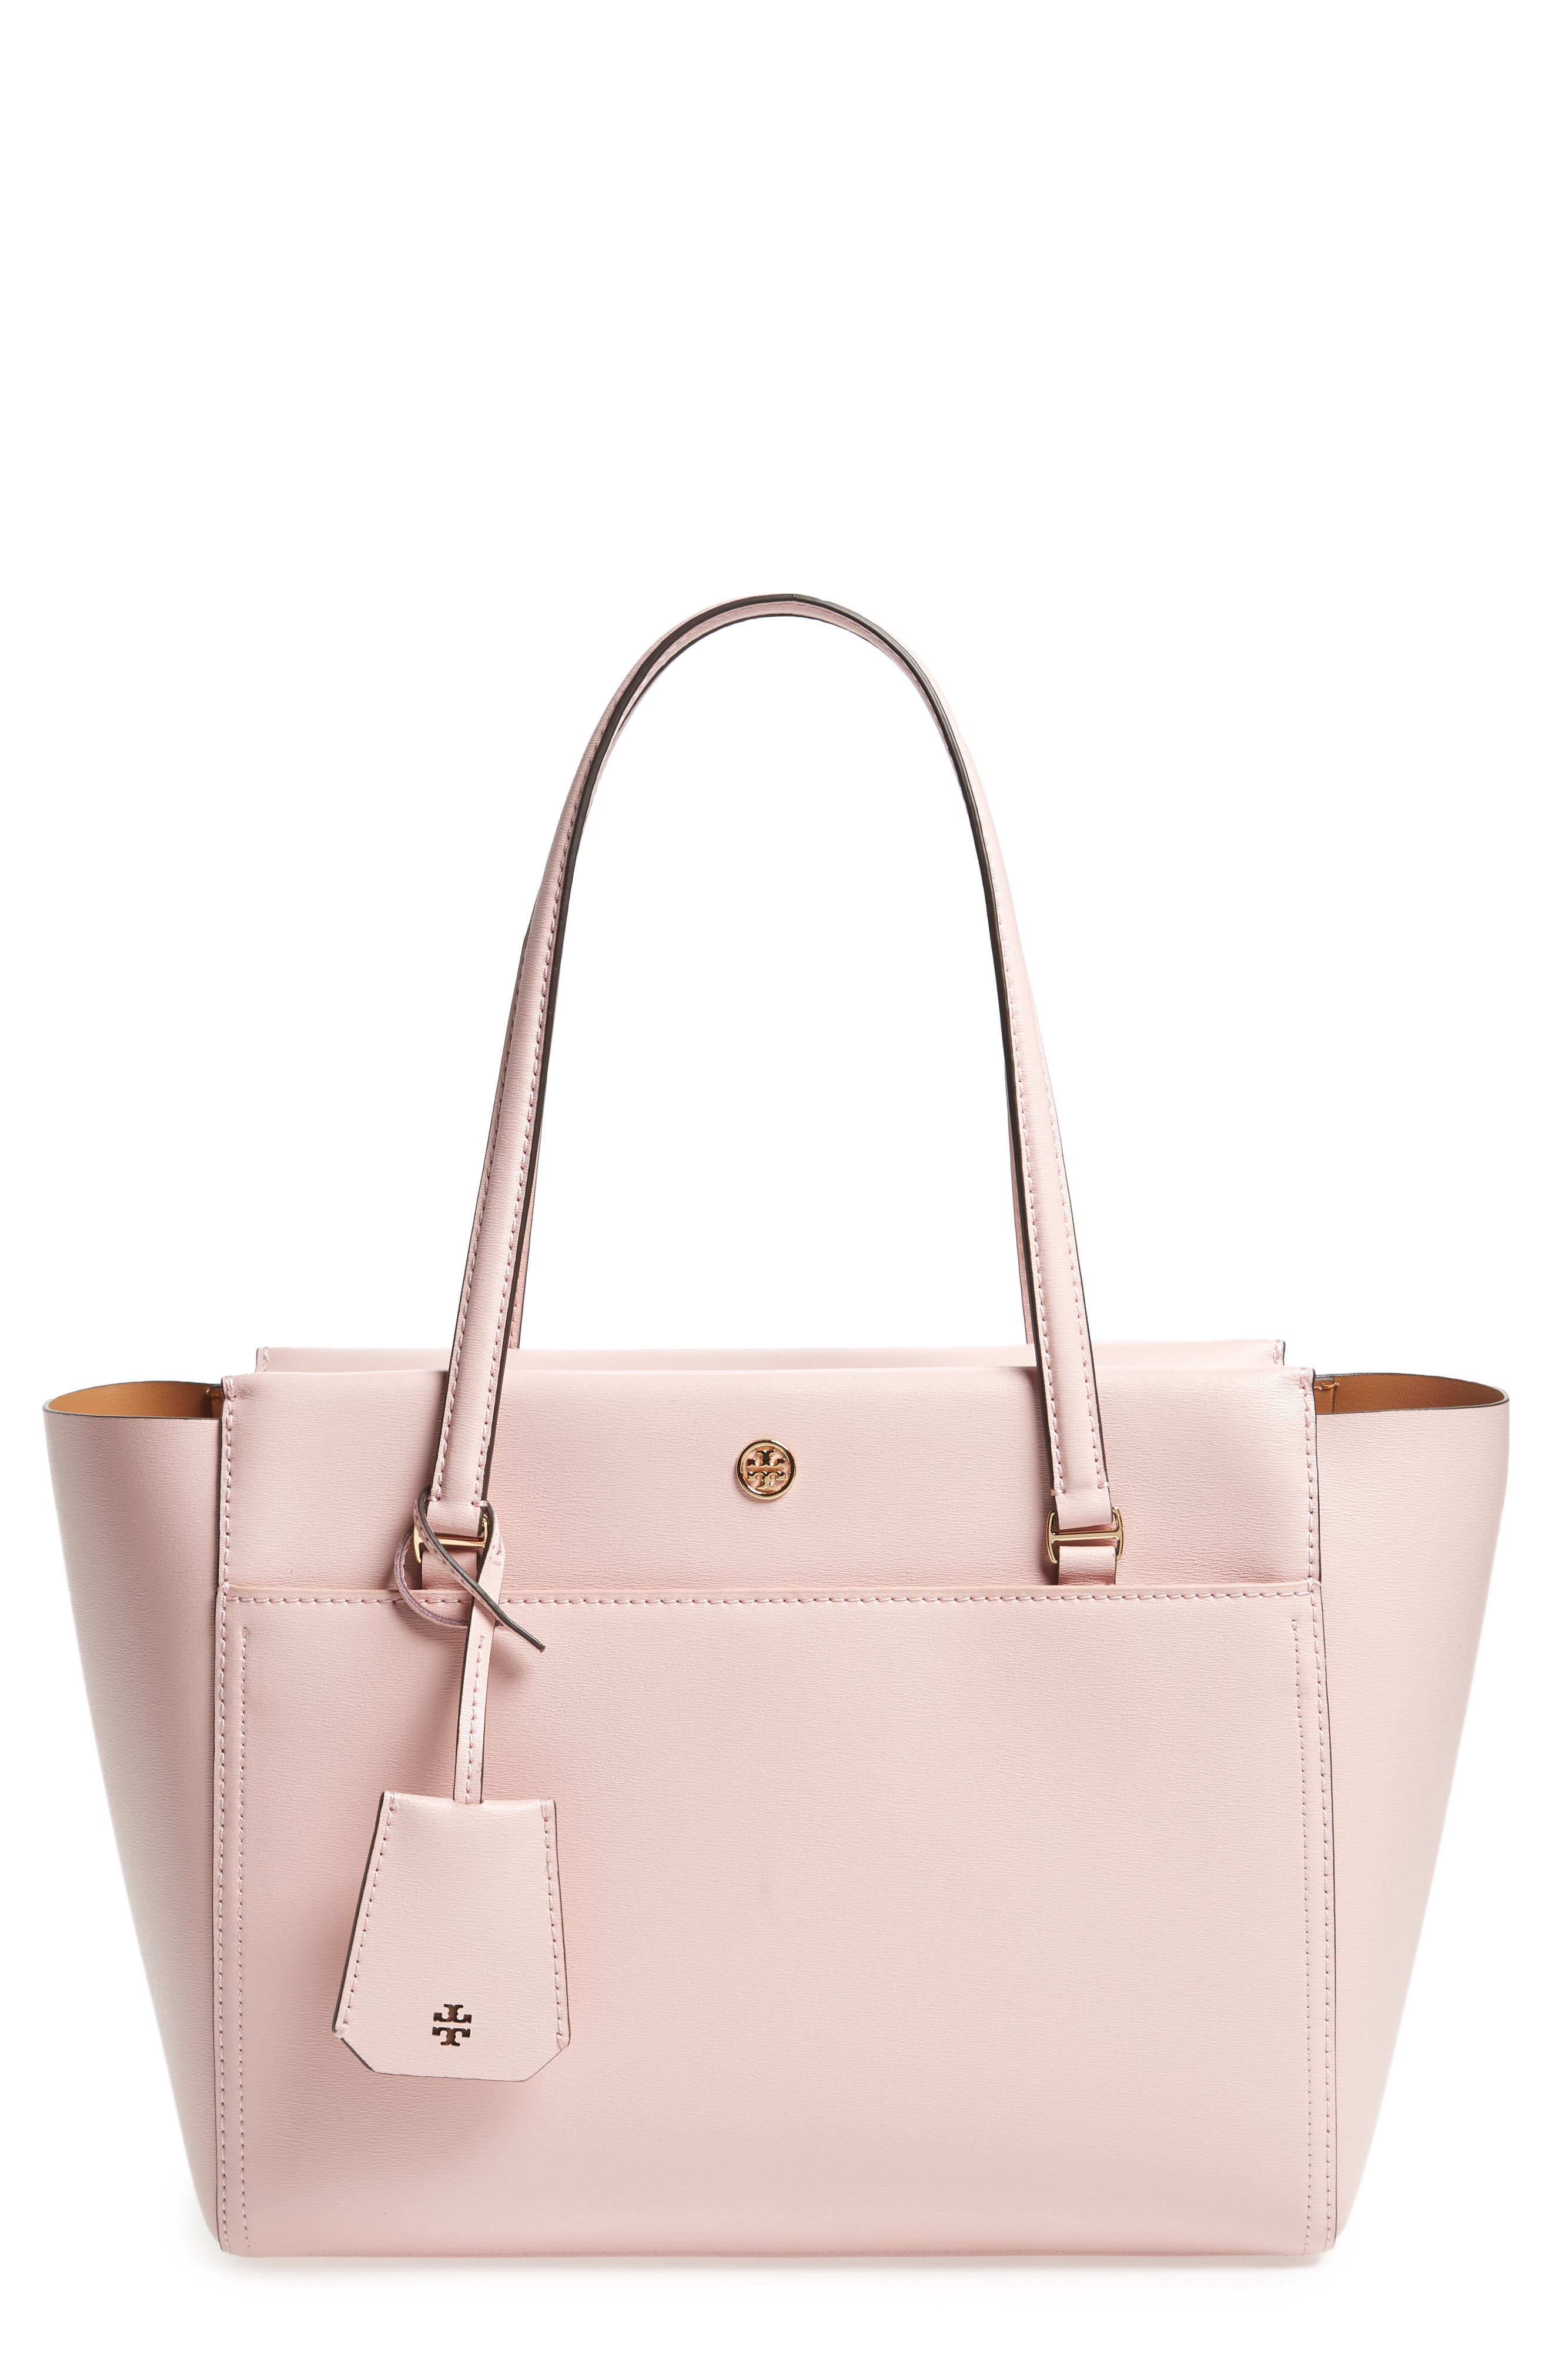 Main Image - Tory Burch Small Parker Leather Tote